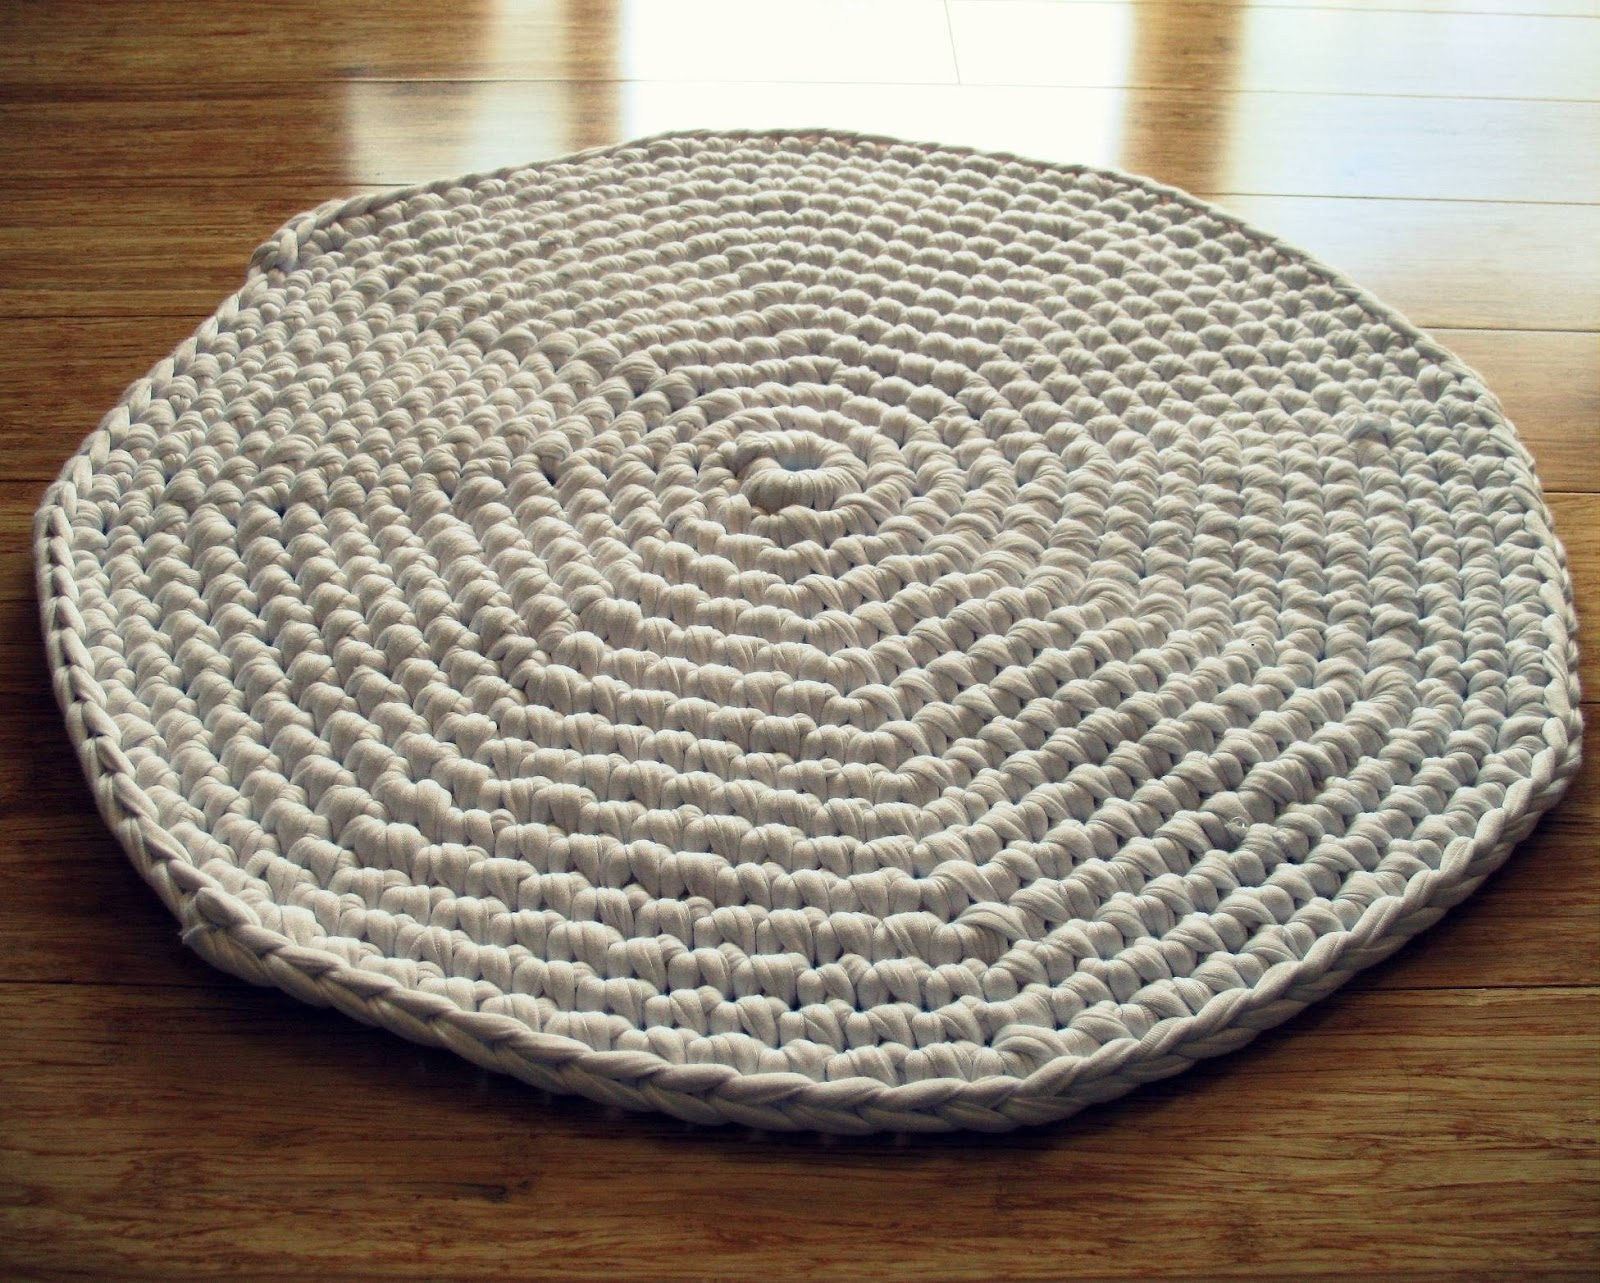 Permalink to Round Crochet Bath Rug